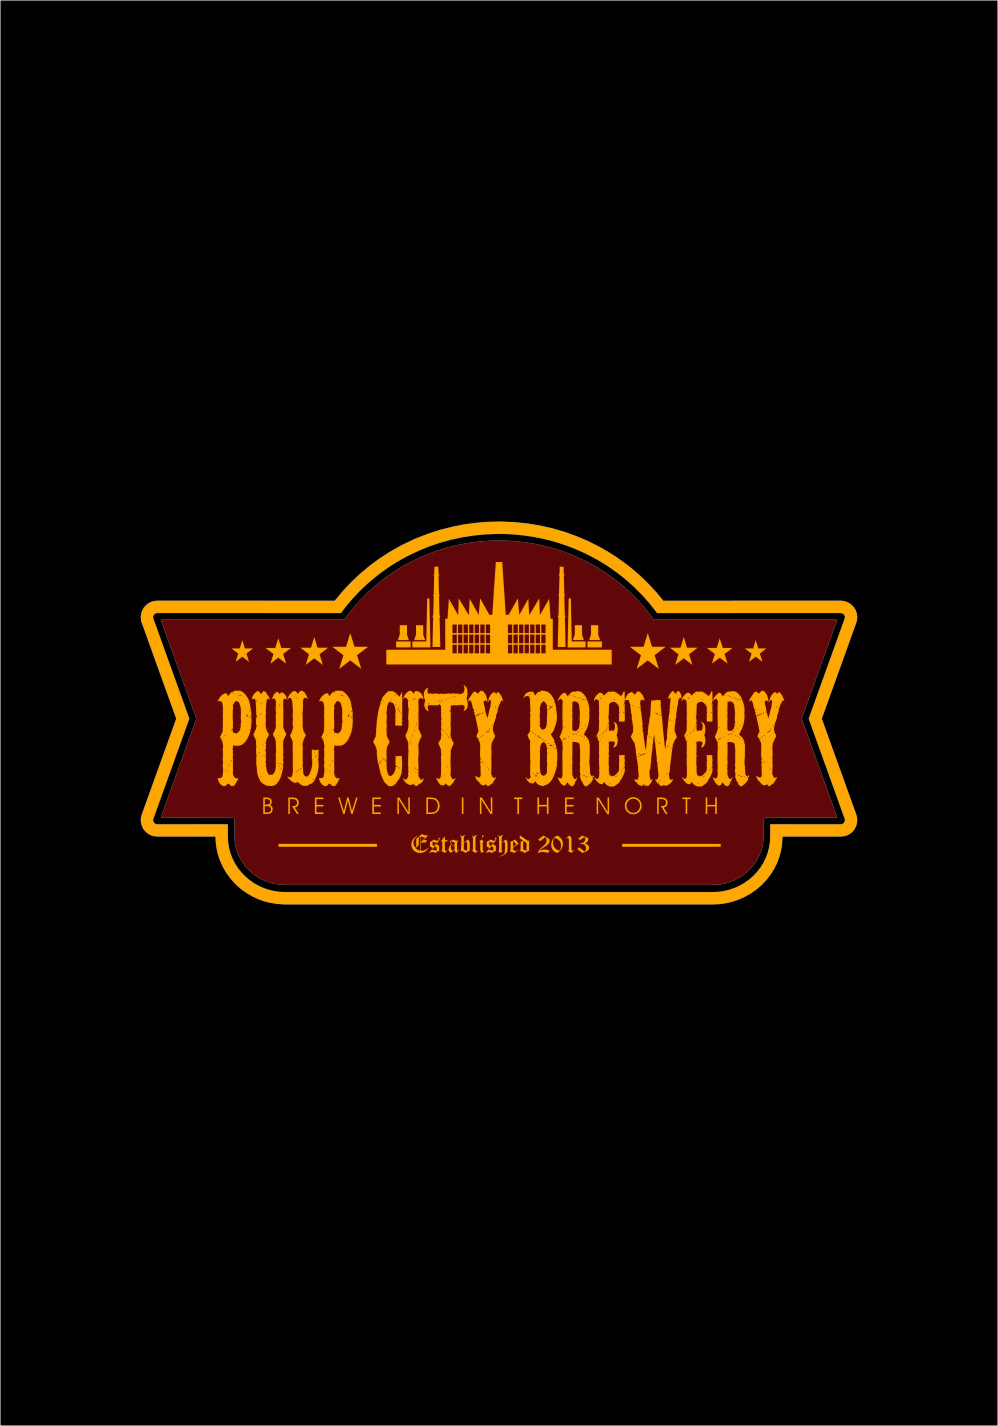 Logo Design by RasYa Muhammad Athaya - Entry No. 65 in the Logo Design Contest Artistic Logo Design for Pulp City Brewery.